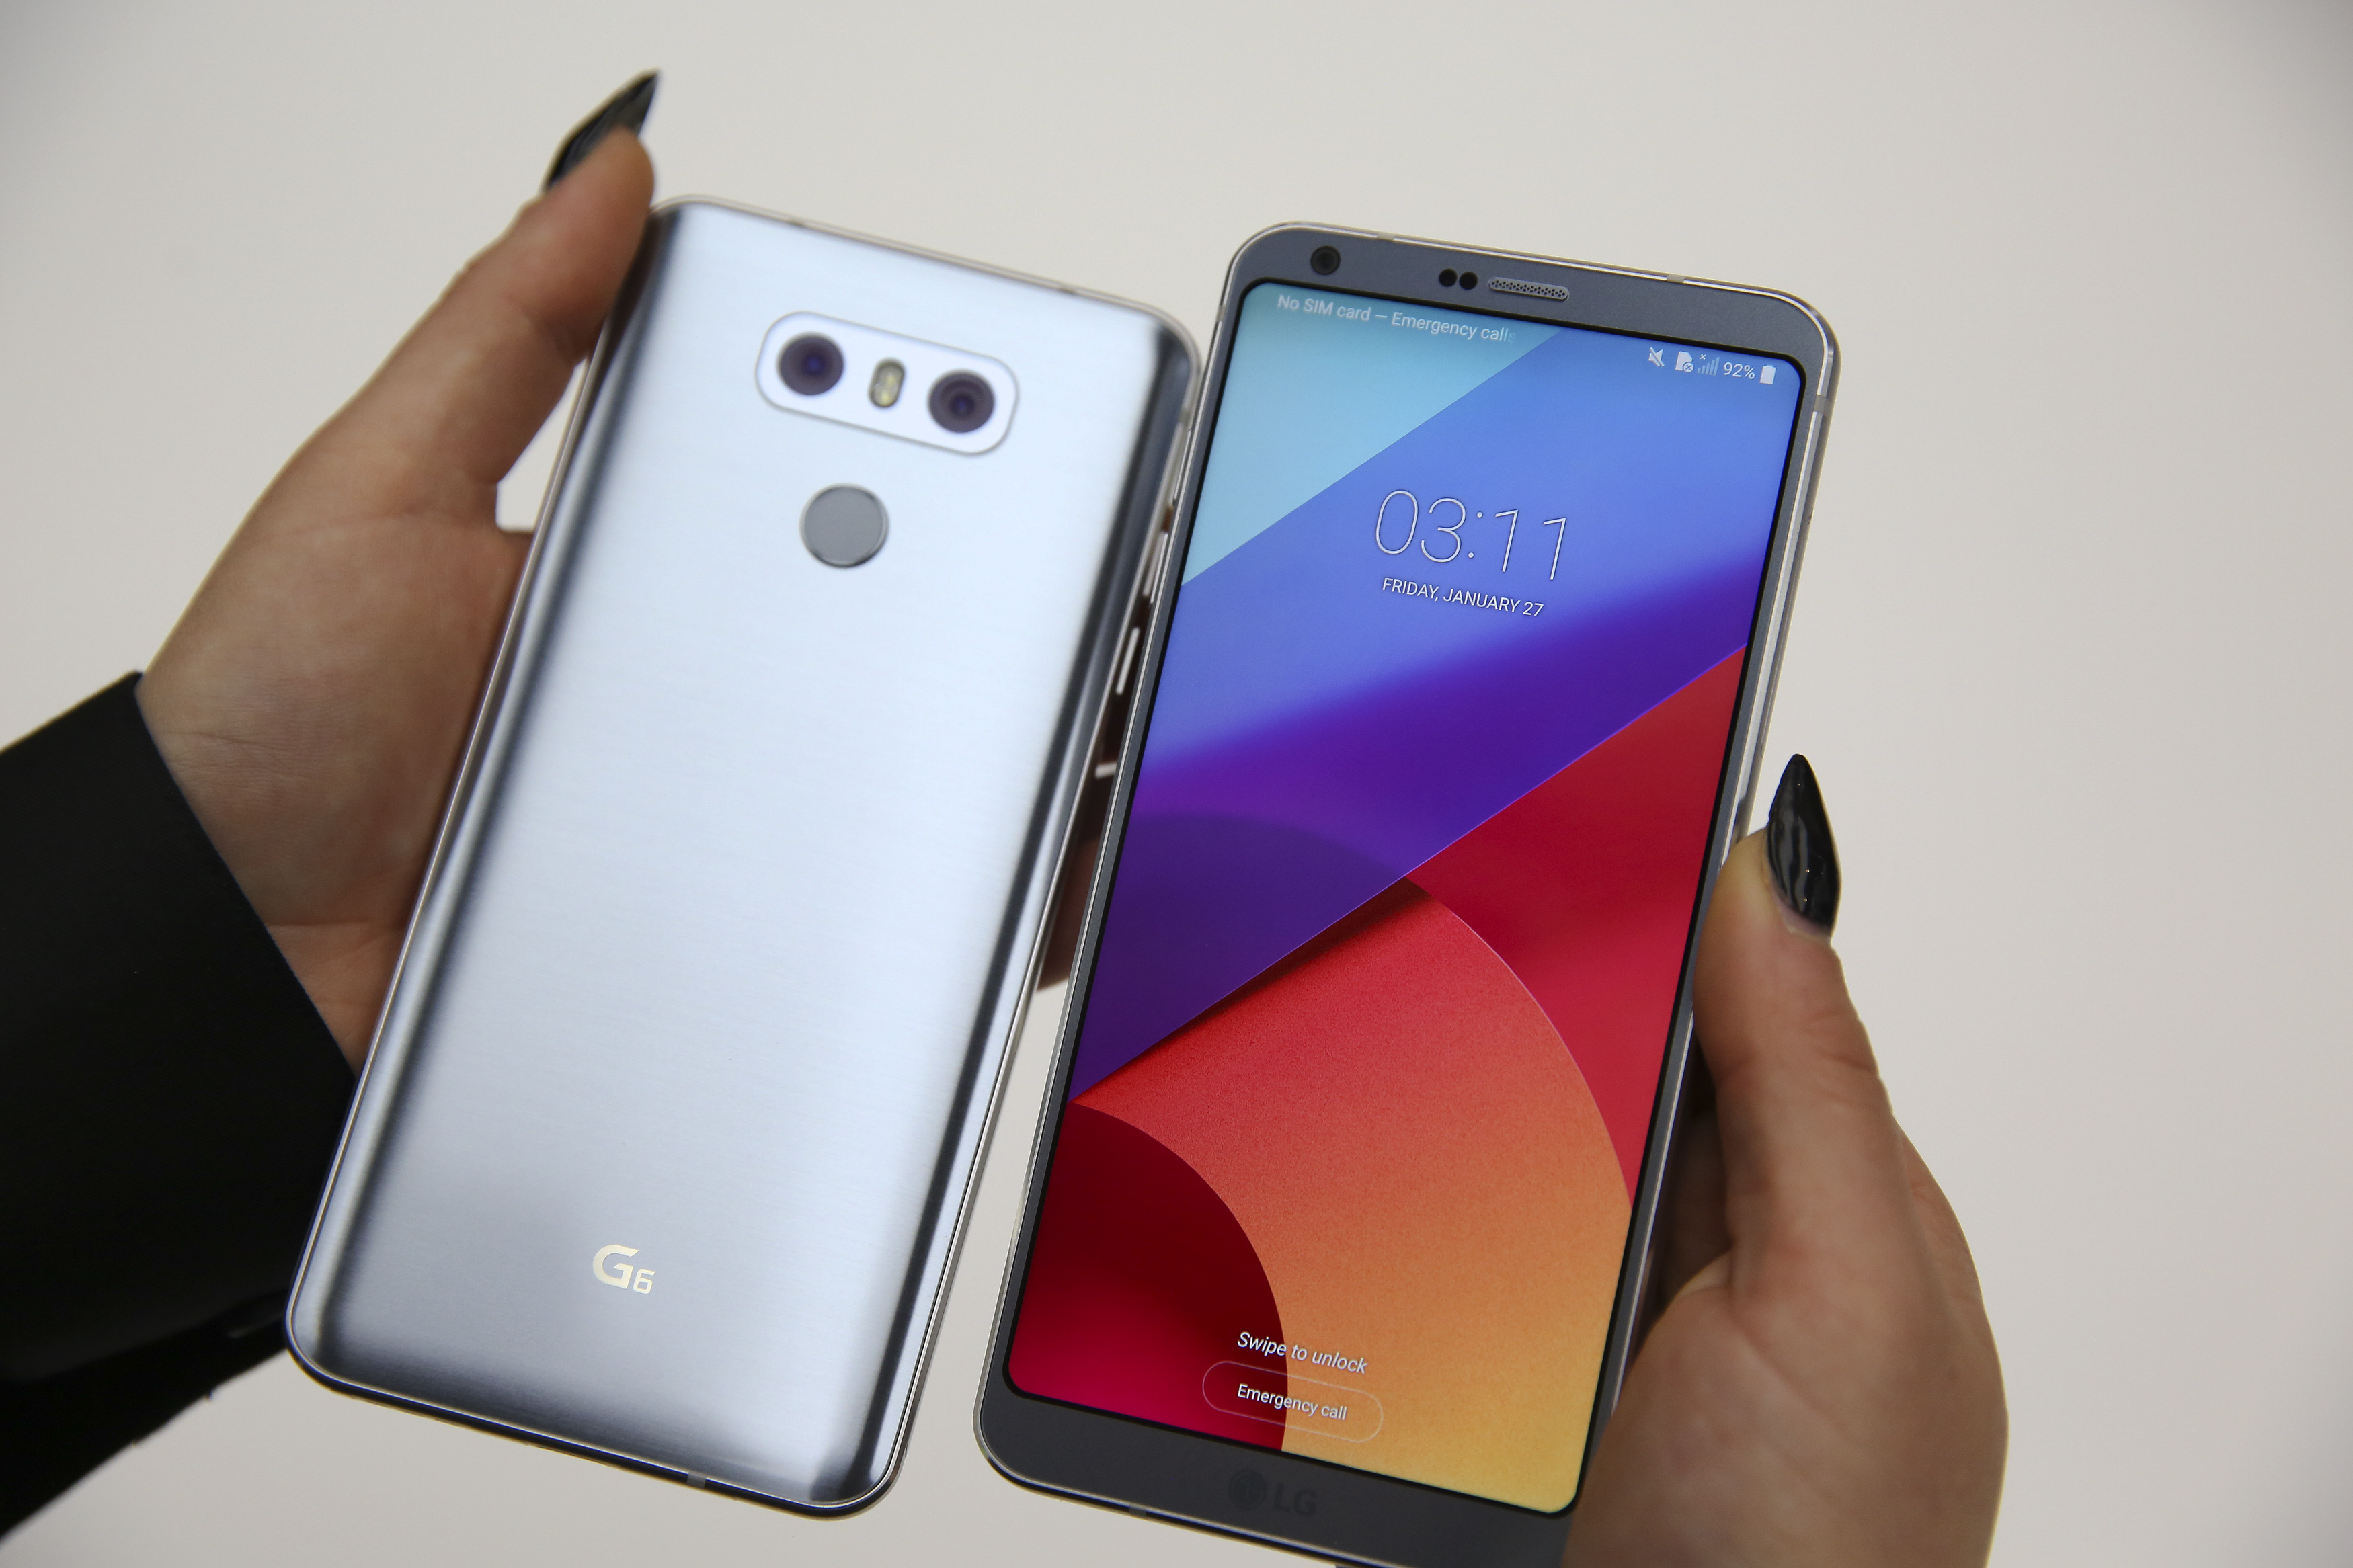 The LG G6 device is displayed at the LG stand at the Mobile World Congress in Barcelona